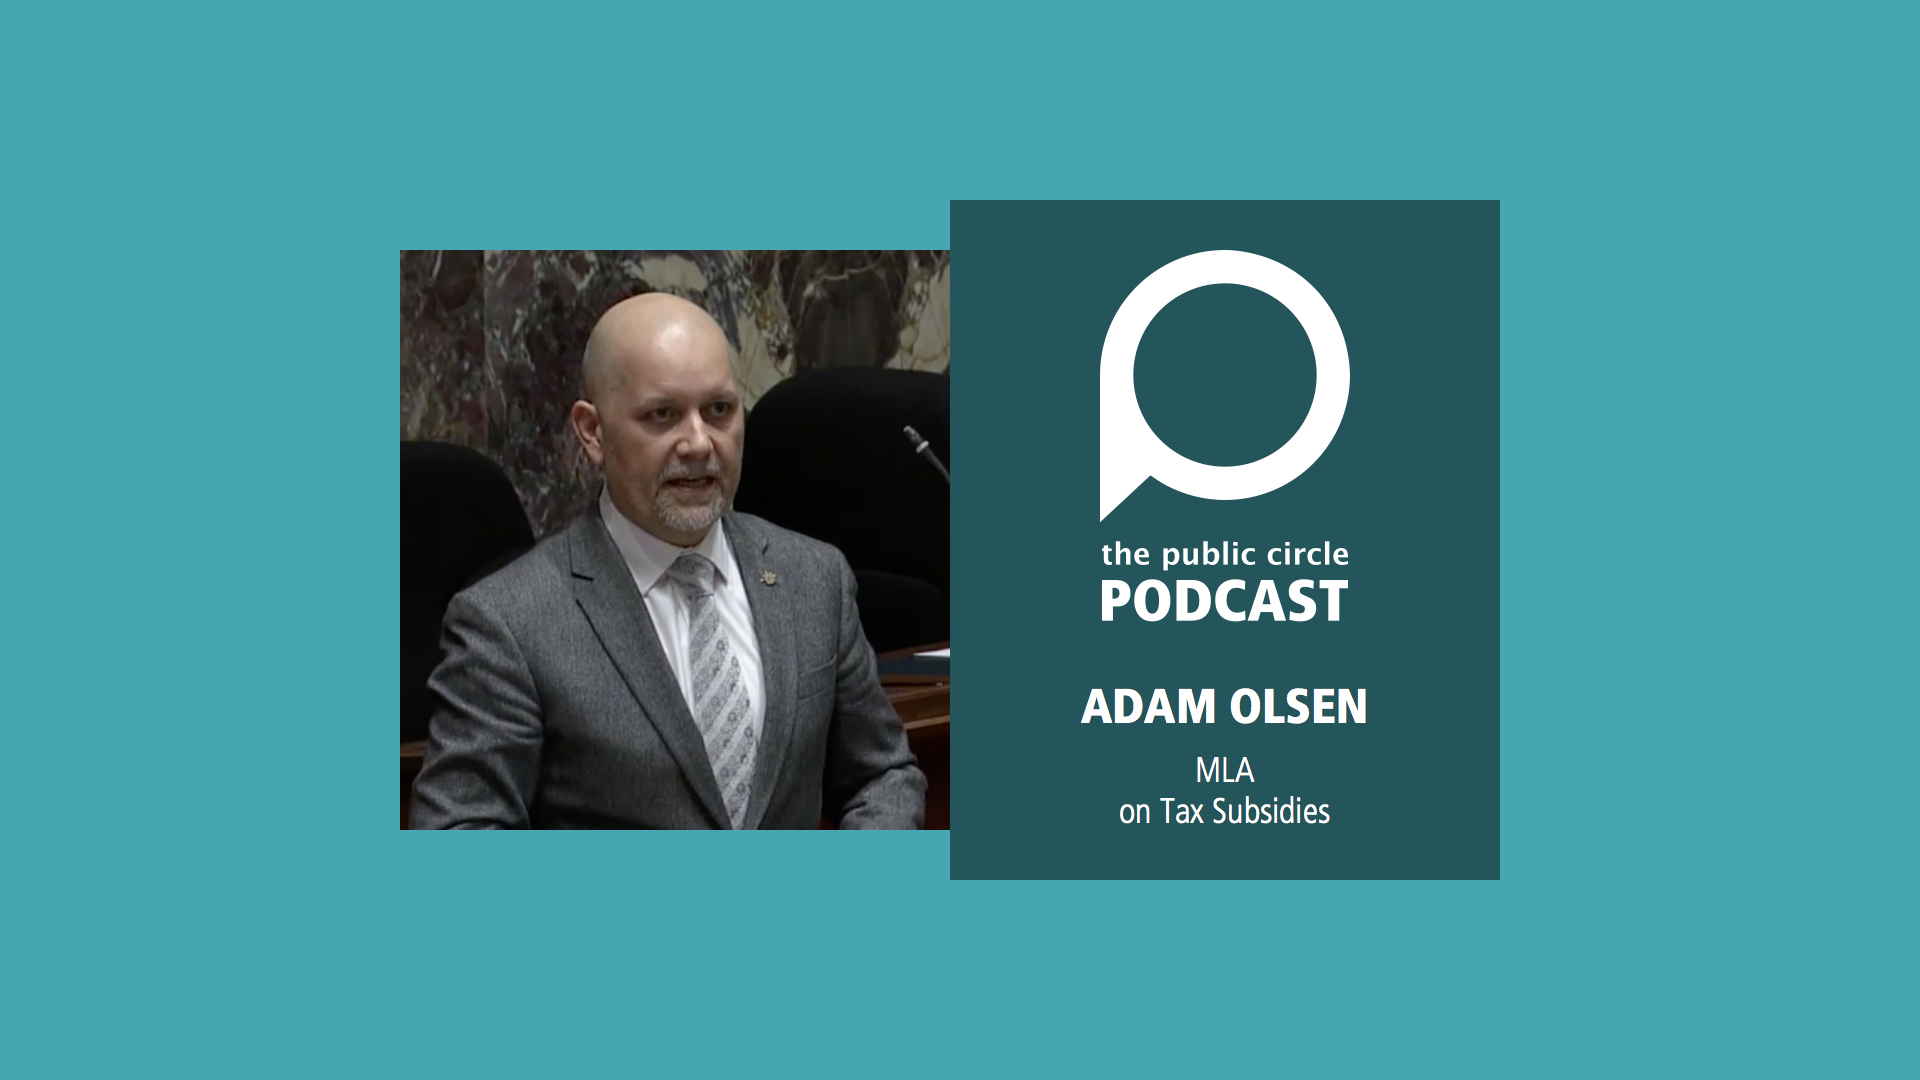 PODCAST: Adam Olsen on the LNG tax subsidies